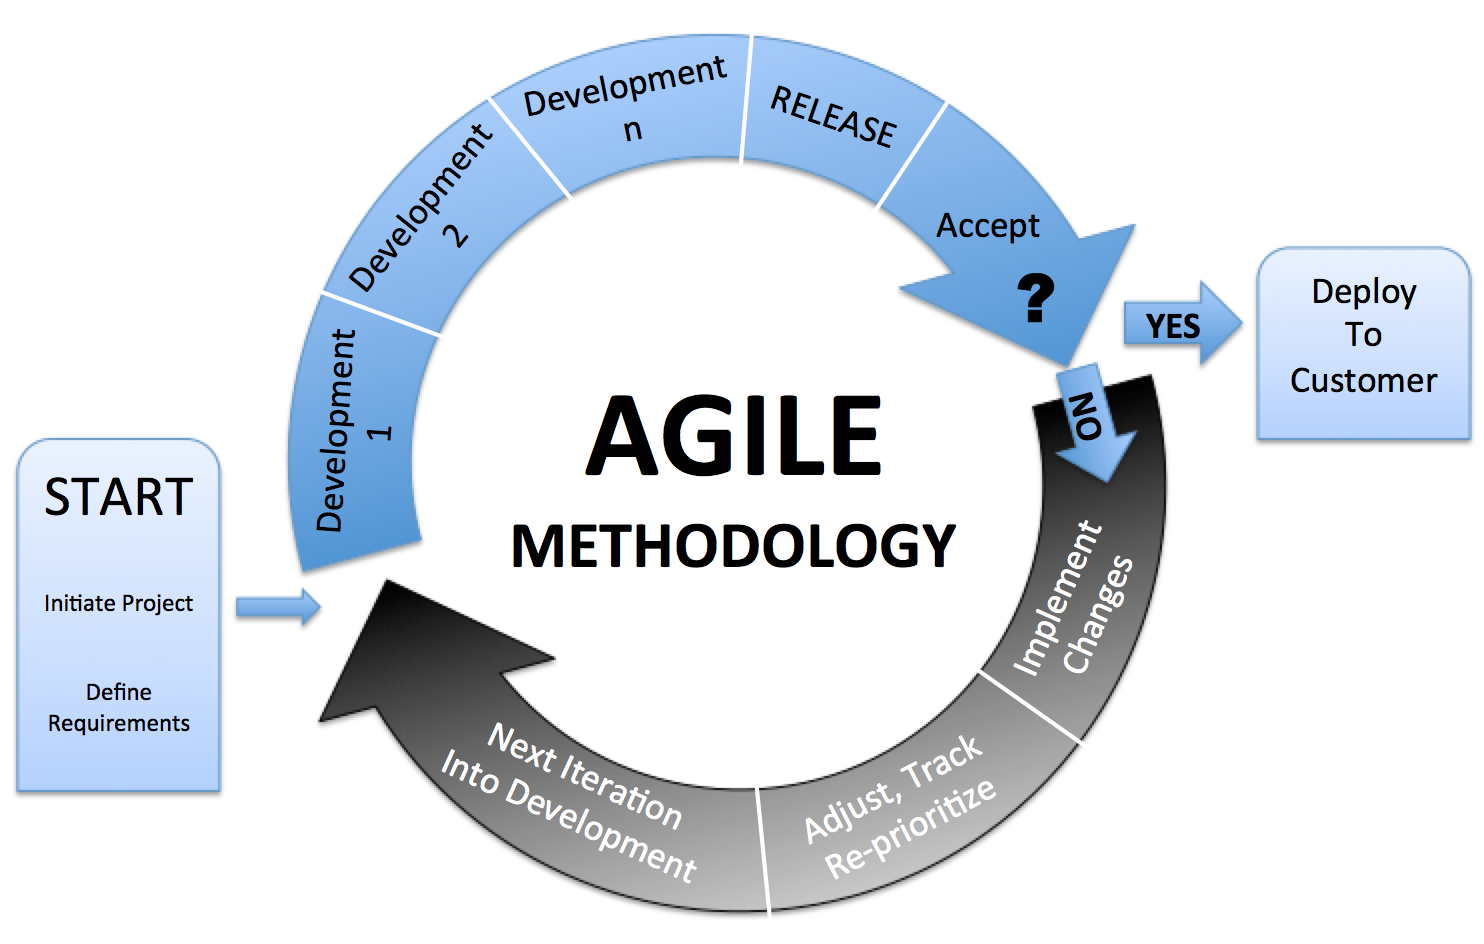 methodology the waterfall model information technology essay This project management methodology is usually best for products related to technology and technological advances, according to manifesto reply agile vs waterfall: project management | rarementors says:.